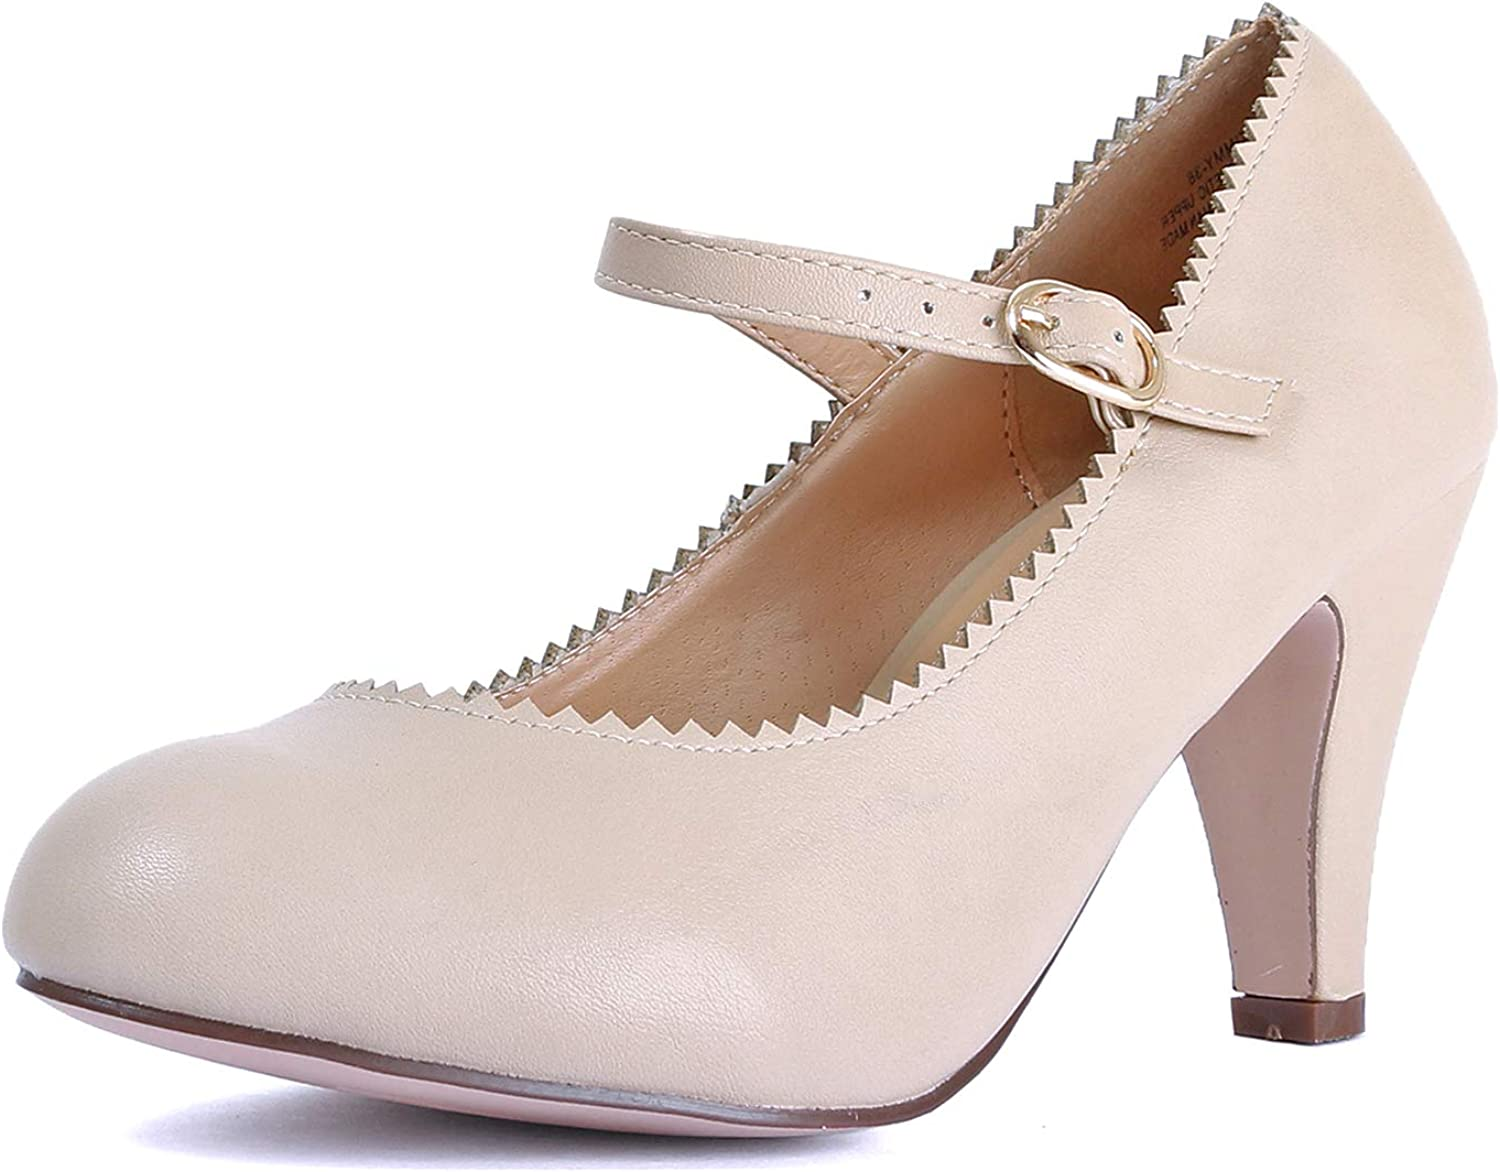 Guilty shoes Womens Classic Mary Jane Low Mid Kitten Heel Round Toe Pumps